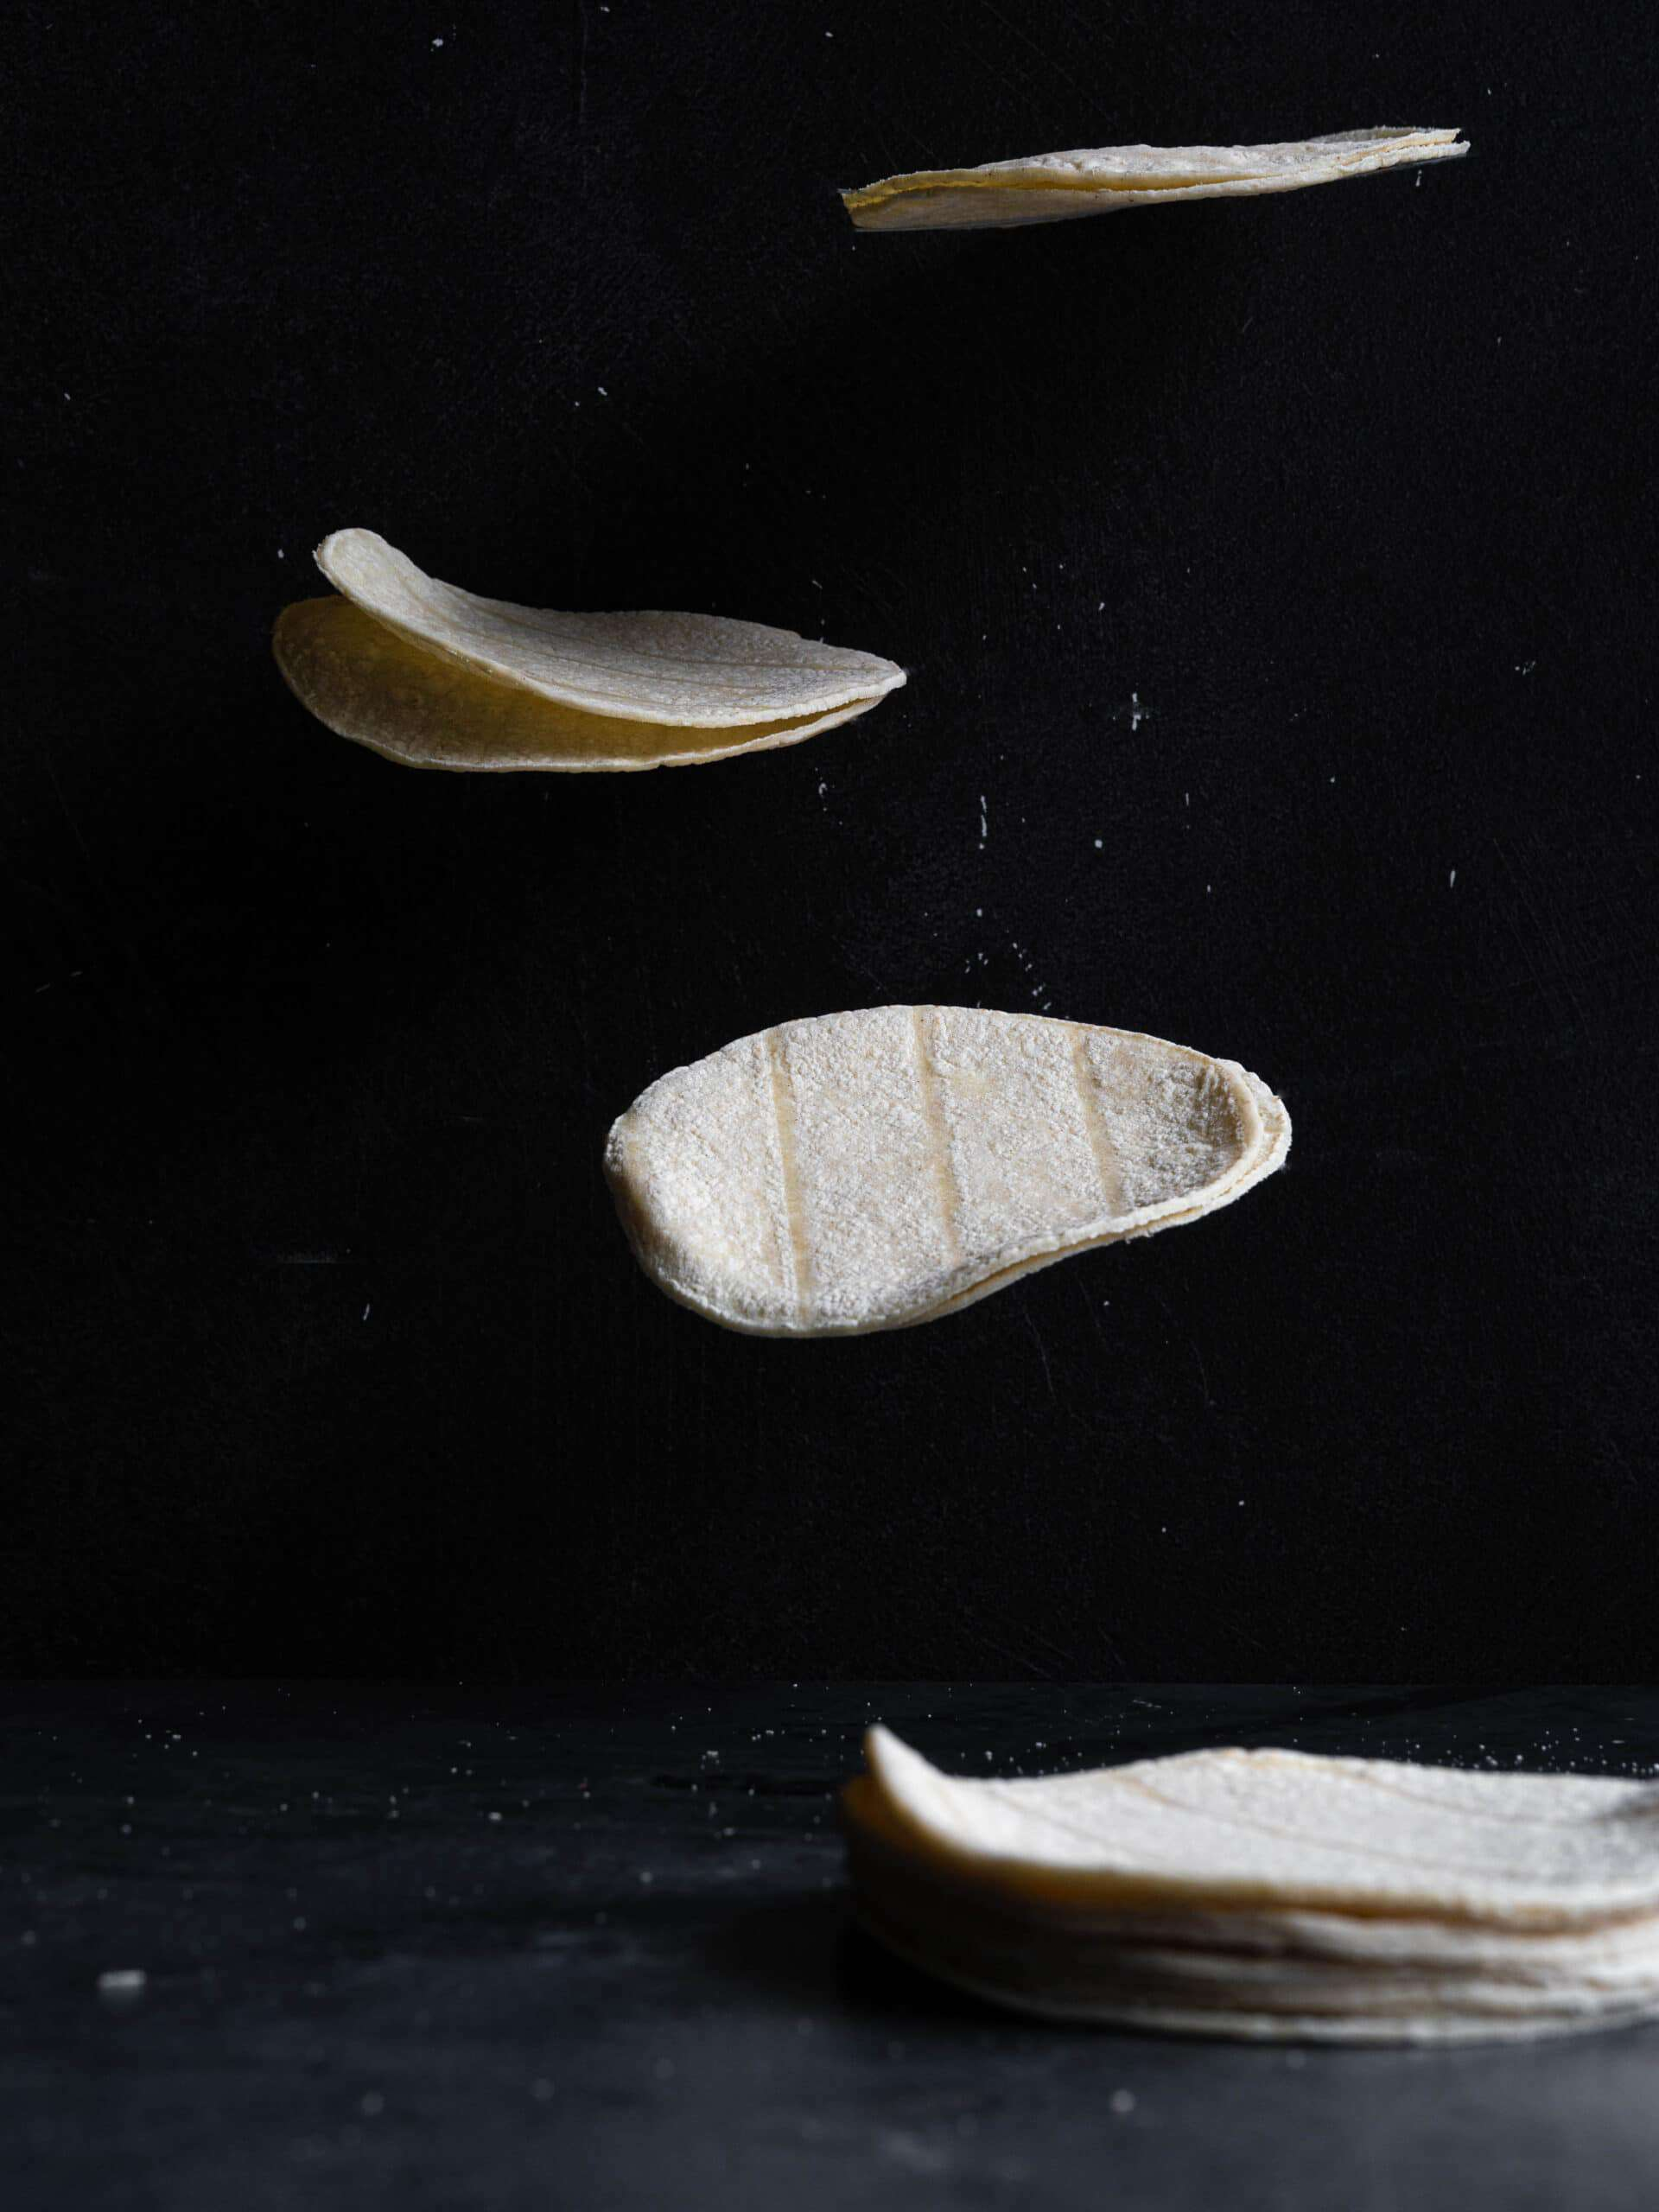 tortillas floating on a black background